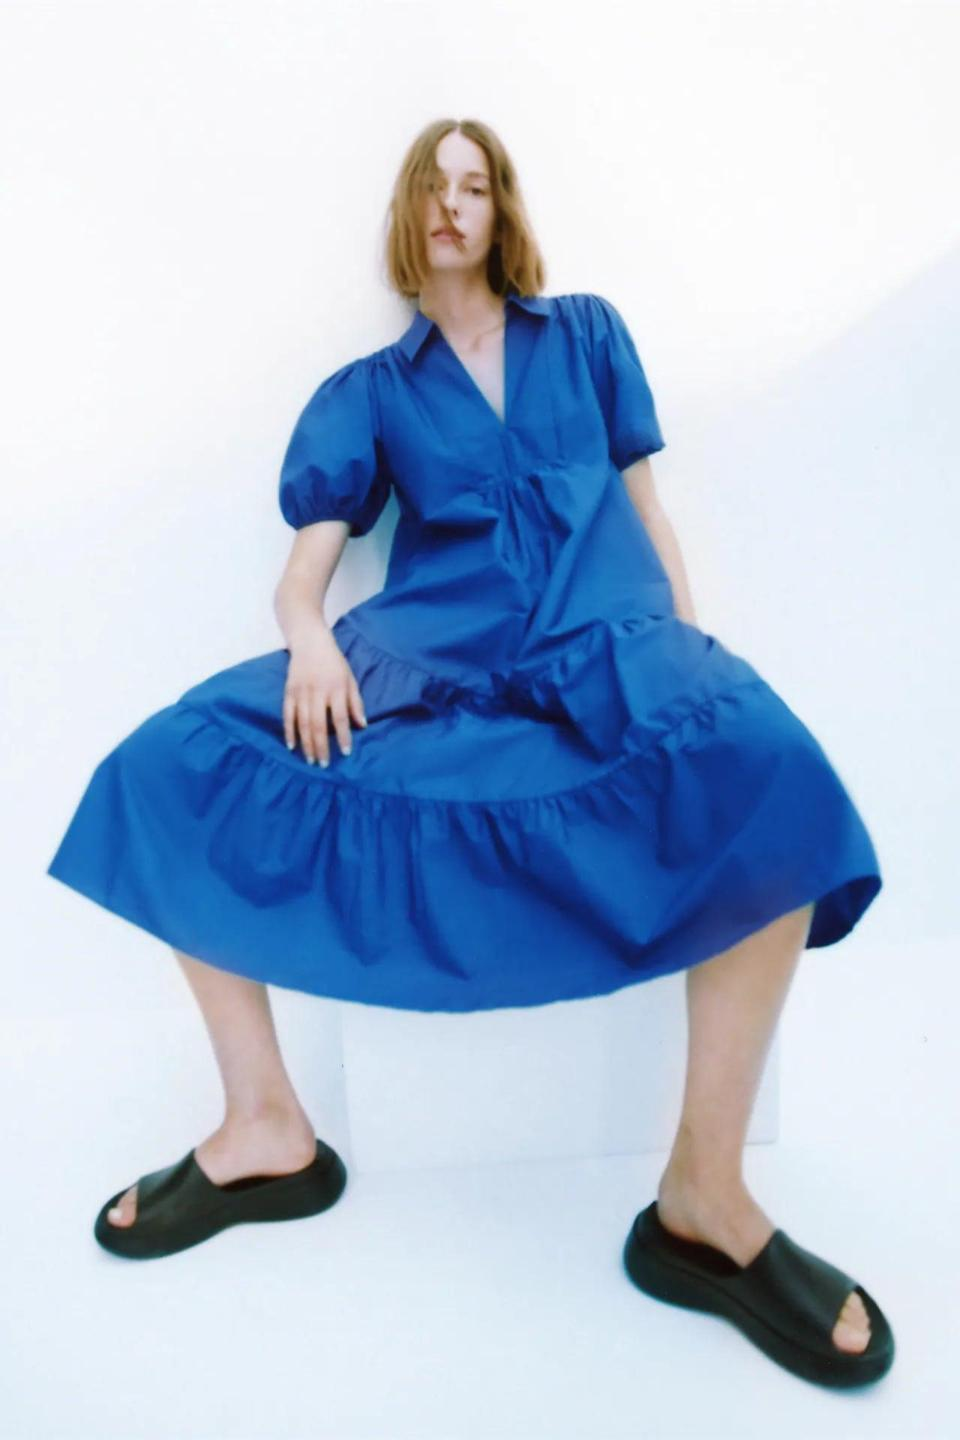 <p>This <span>Oversized Poplin Dress</span> ($50) is a failsafe choice for taking Zoom meetings, then heading out to drinks afterward. Pair it with slides if you're feeling lazy or platform wedges if you're dressing to impress.</p>